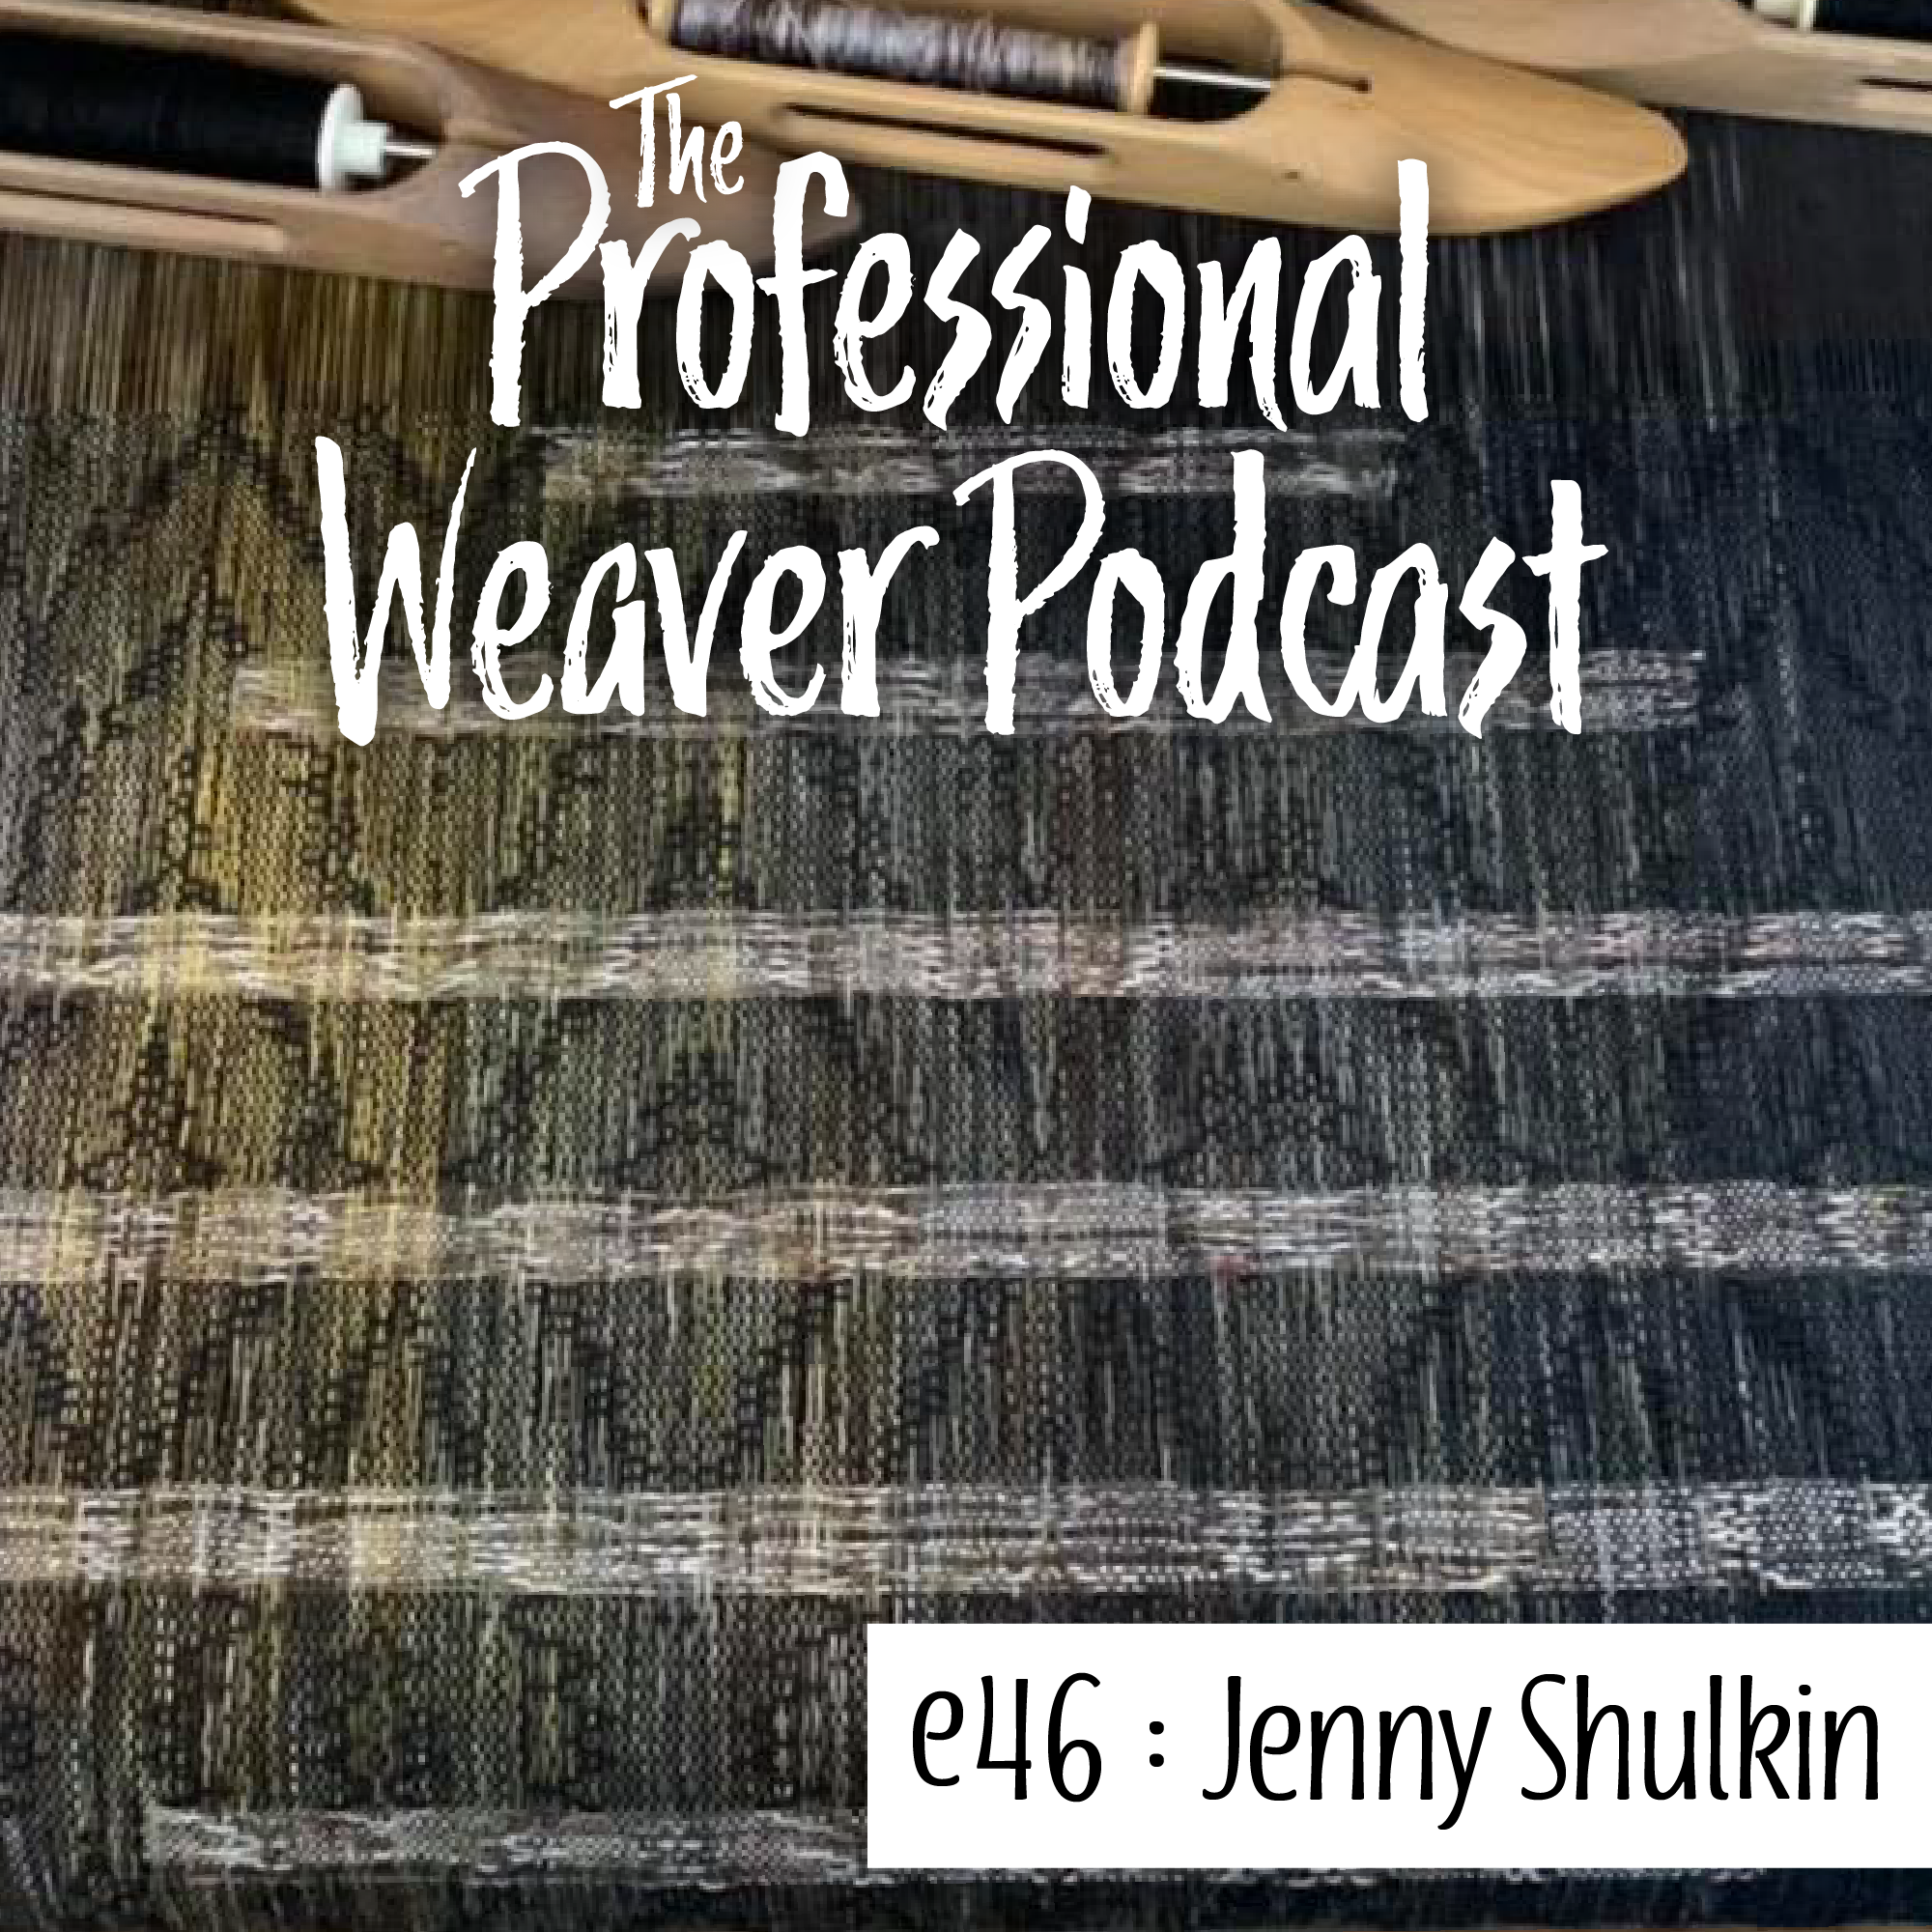 S2E15 : Jenny Shulkin on how OoLaLoom came about, how social media is used to drive her business, and a little bit on the inner workings of baby wrap weaving.